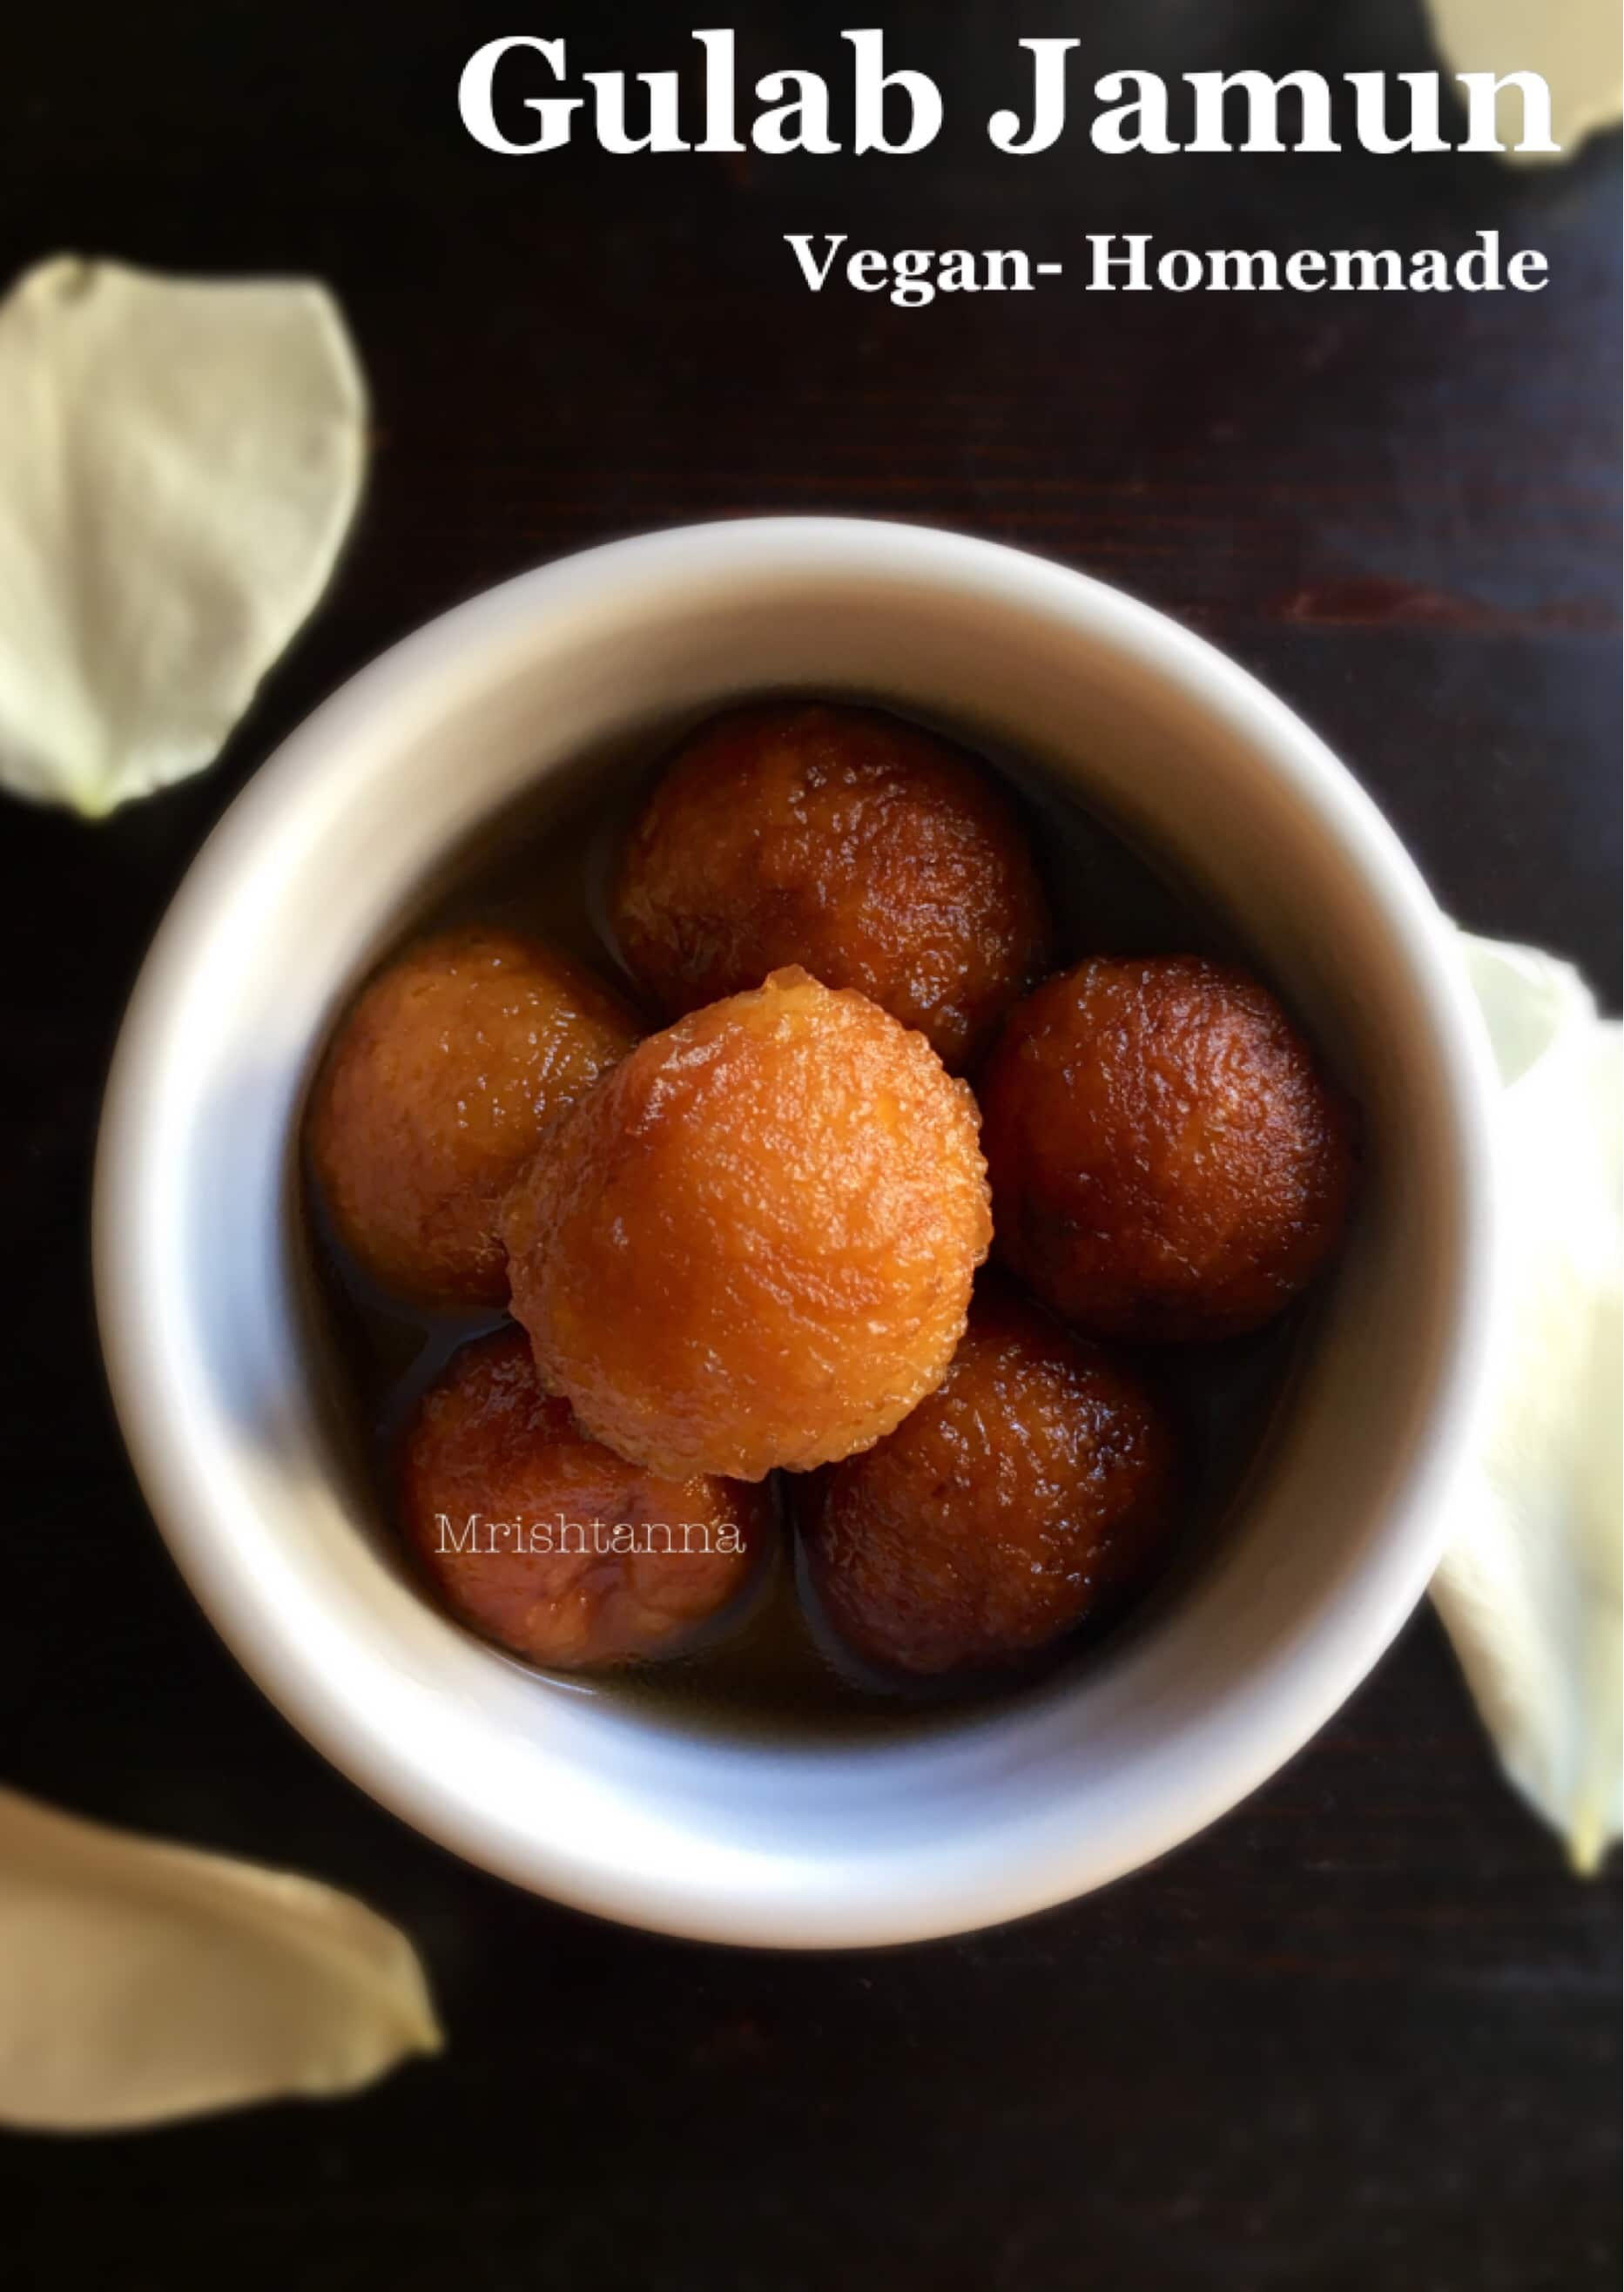 A bowl of food, with Gulab jamun and Recipes